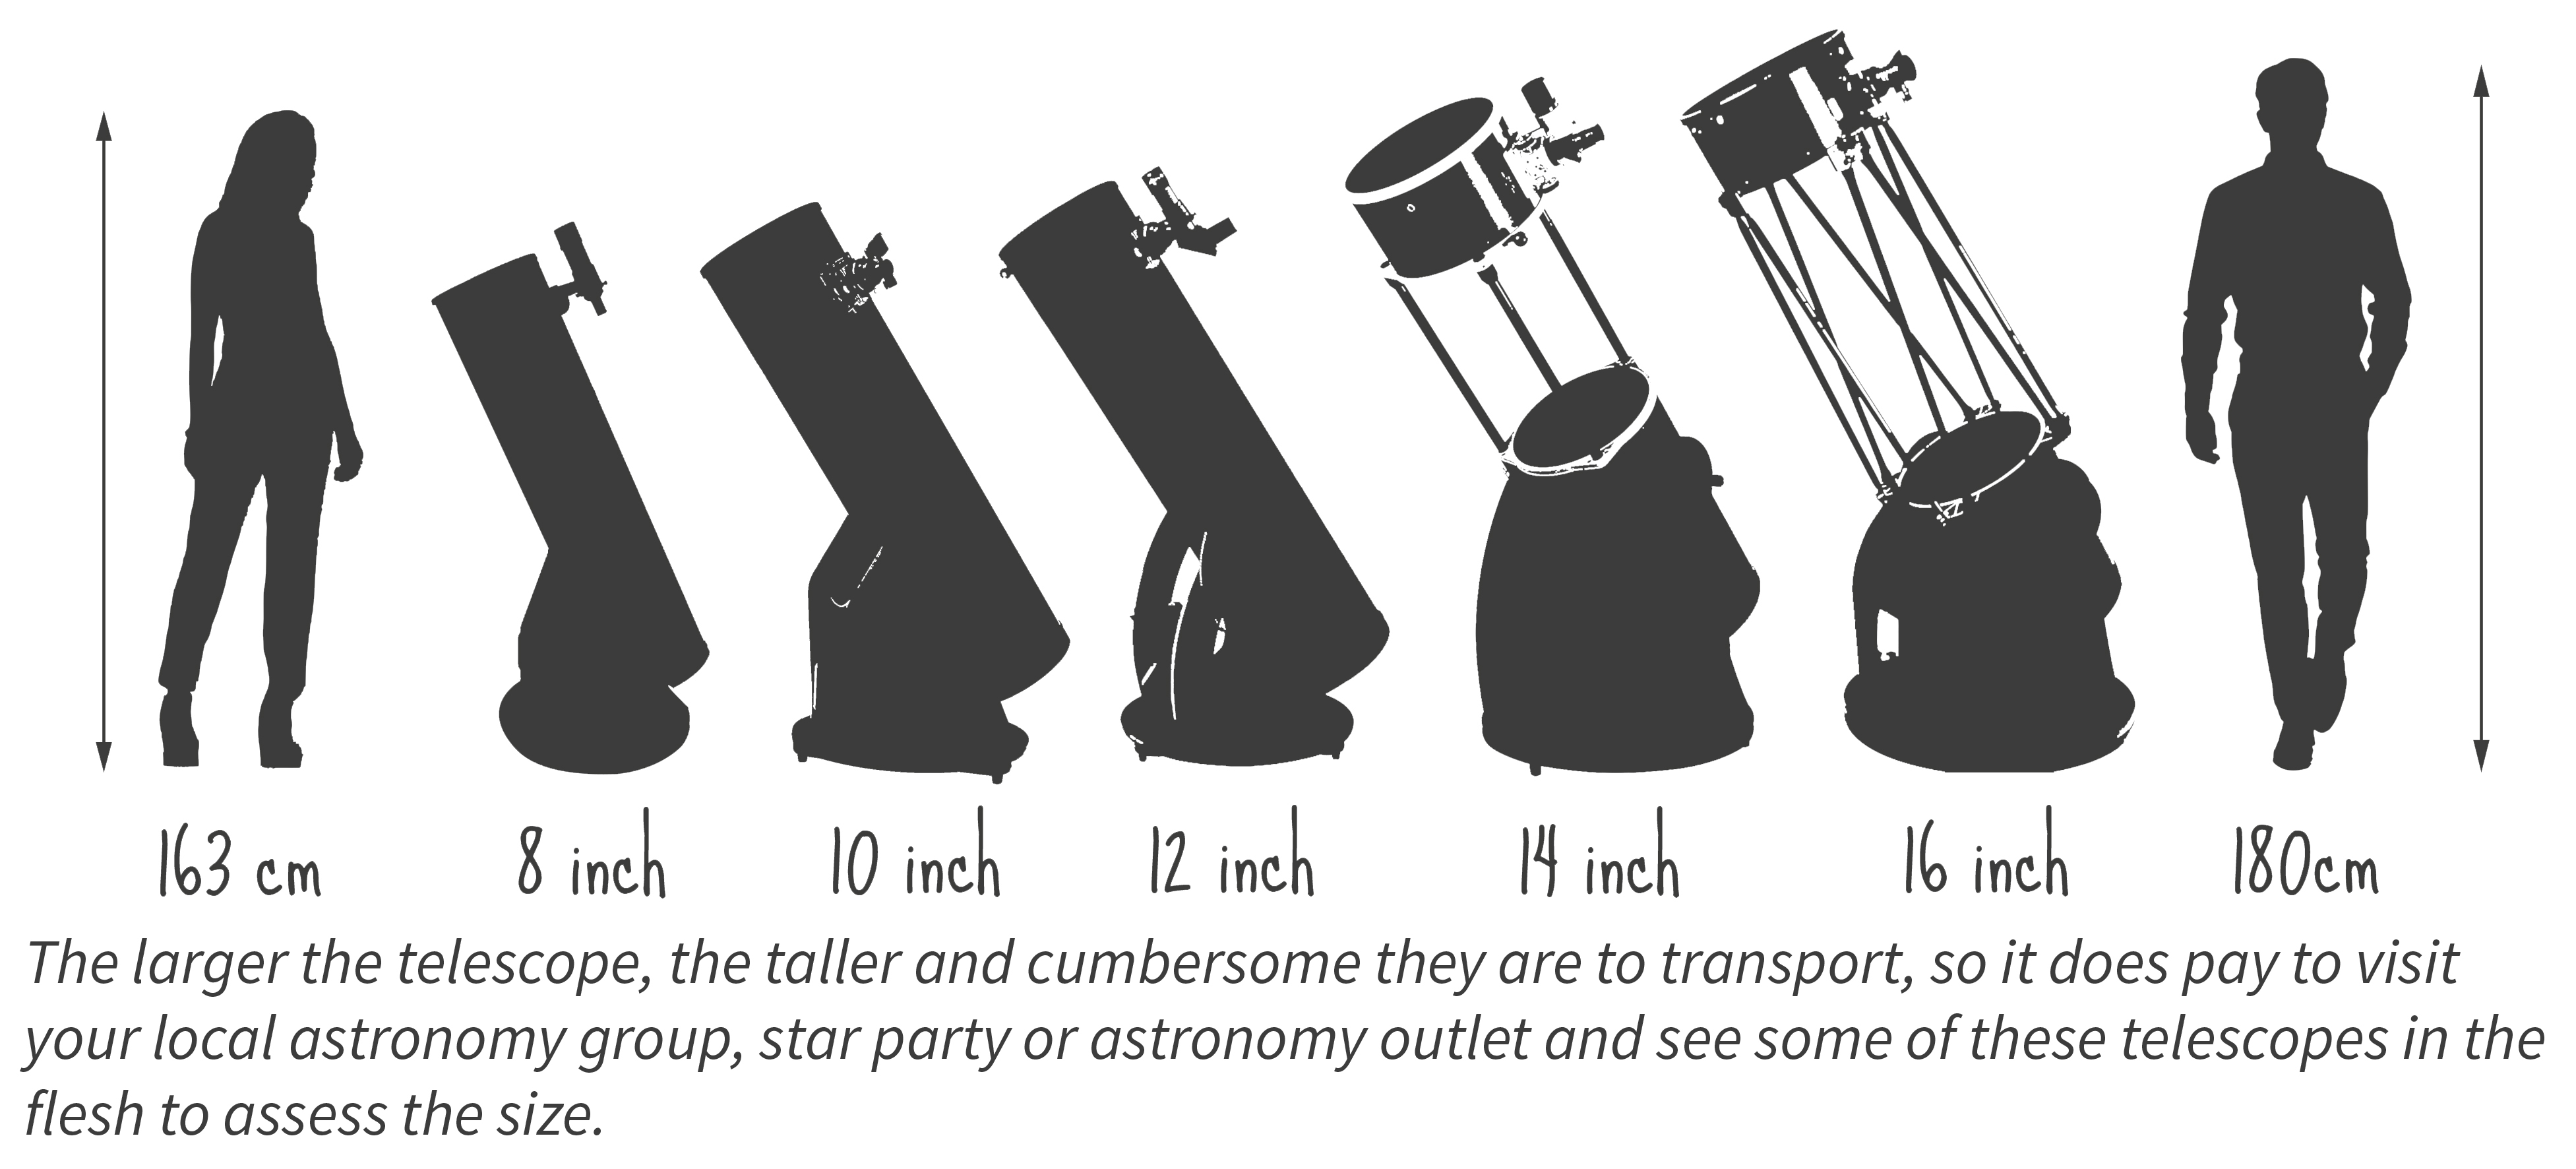 Telescopes by size, average height woman and man